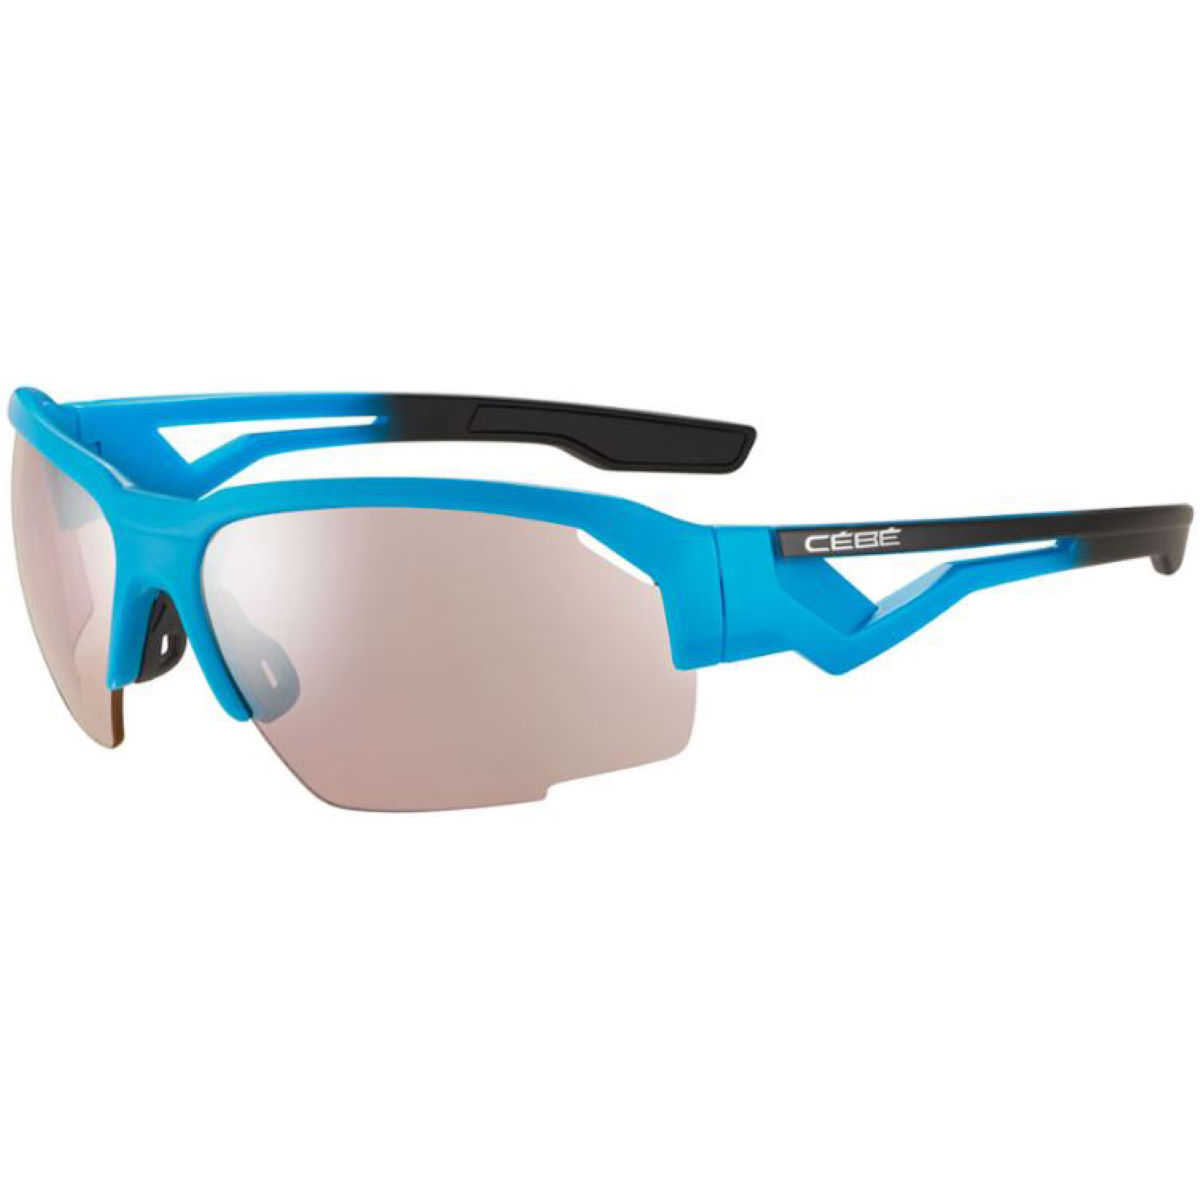 Hilldrop Sunglasses   Sunglasses